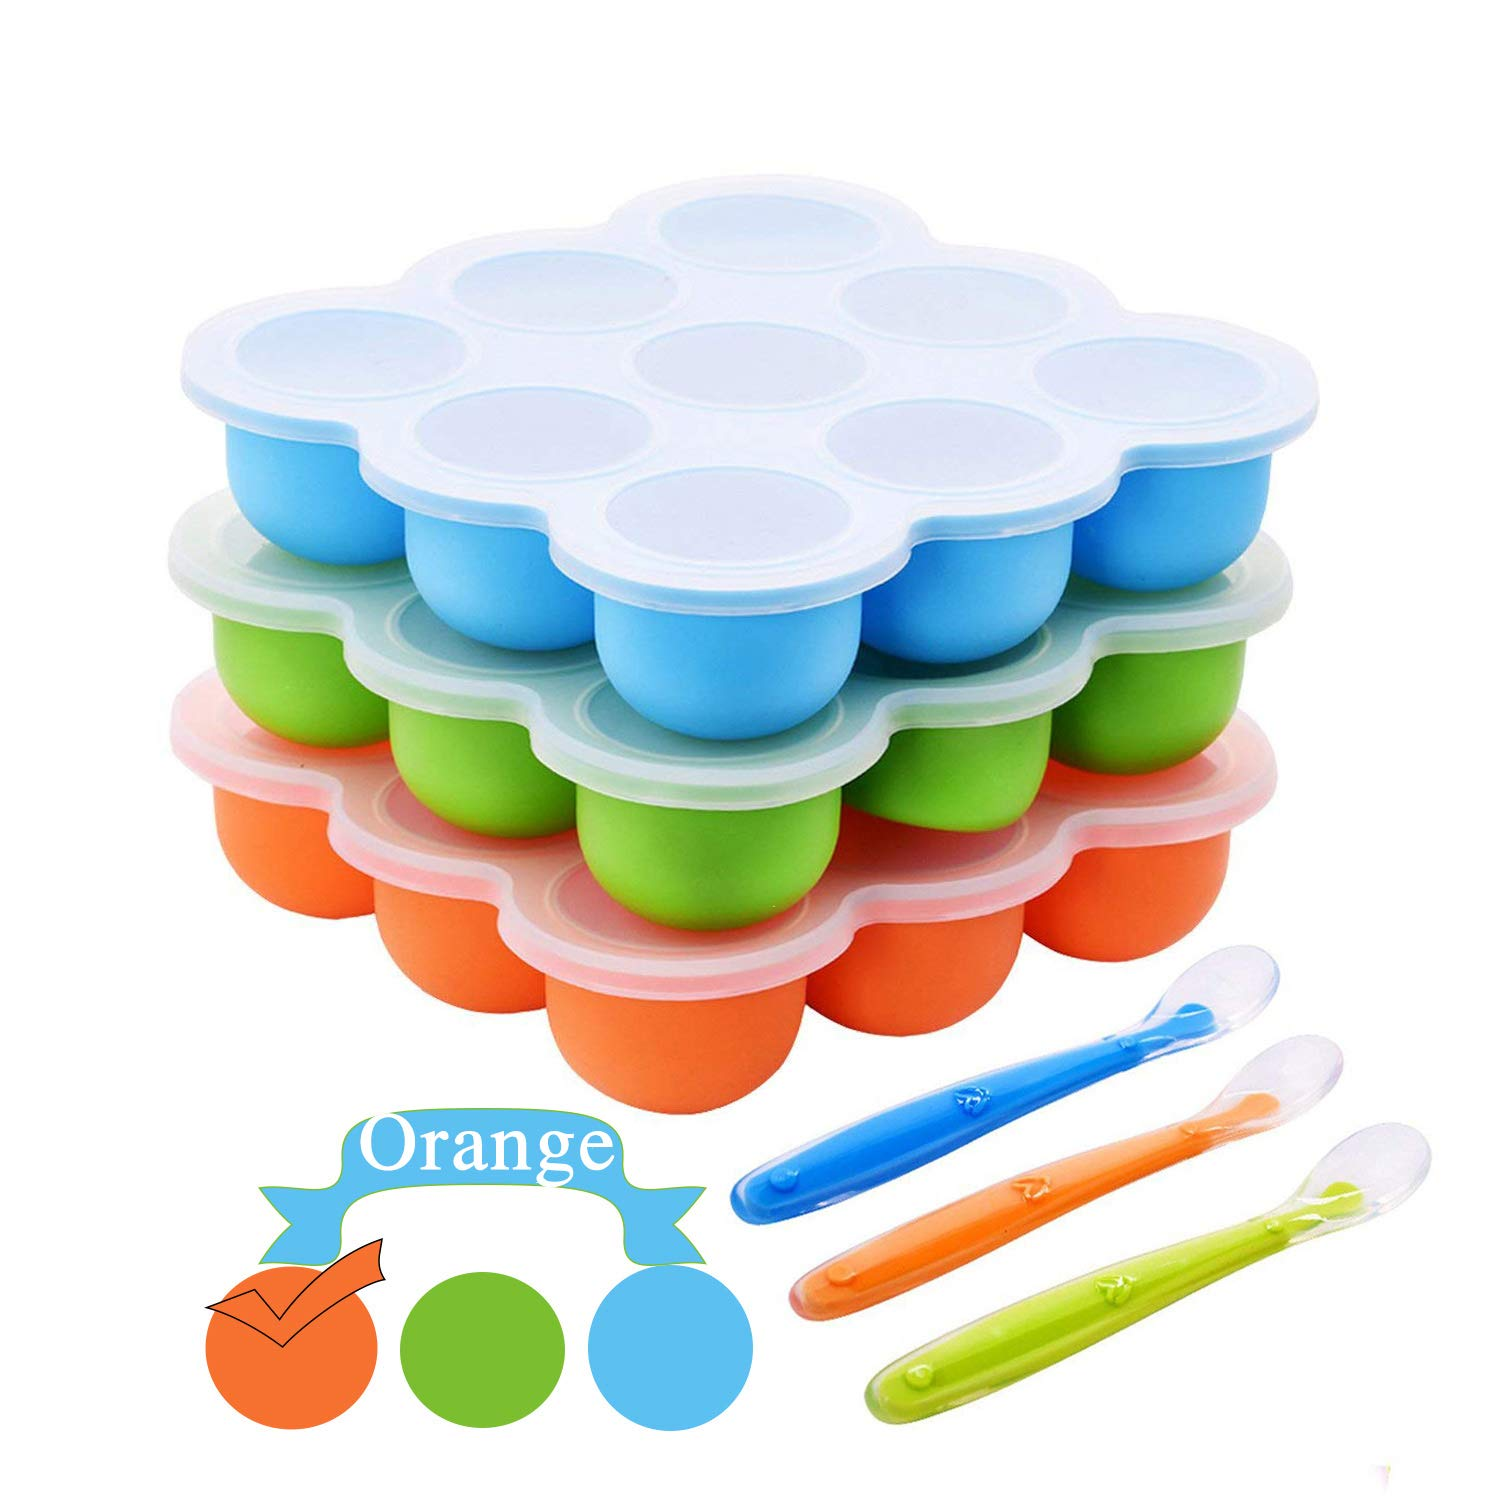 Silicone Food Freezer Trays,Baby Food Storage Containers with Clip-On Lids +Spoon-9x2.5oz BPA Free and FDA Approved Dishwasher Safe(Orange)